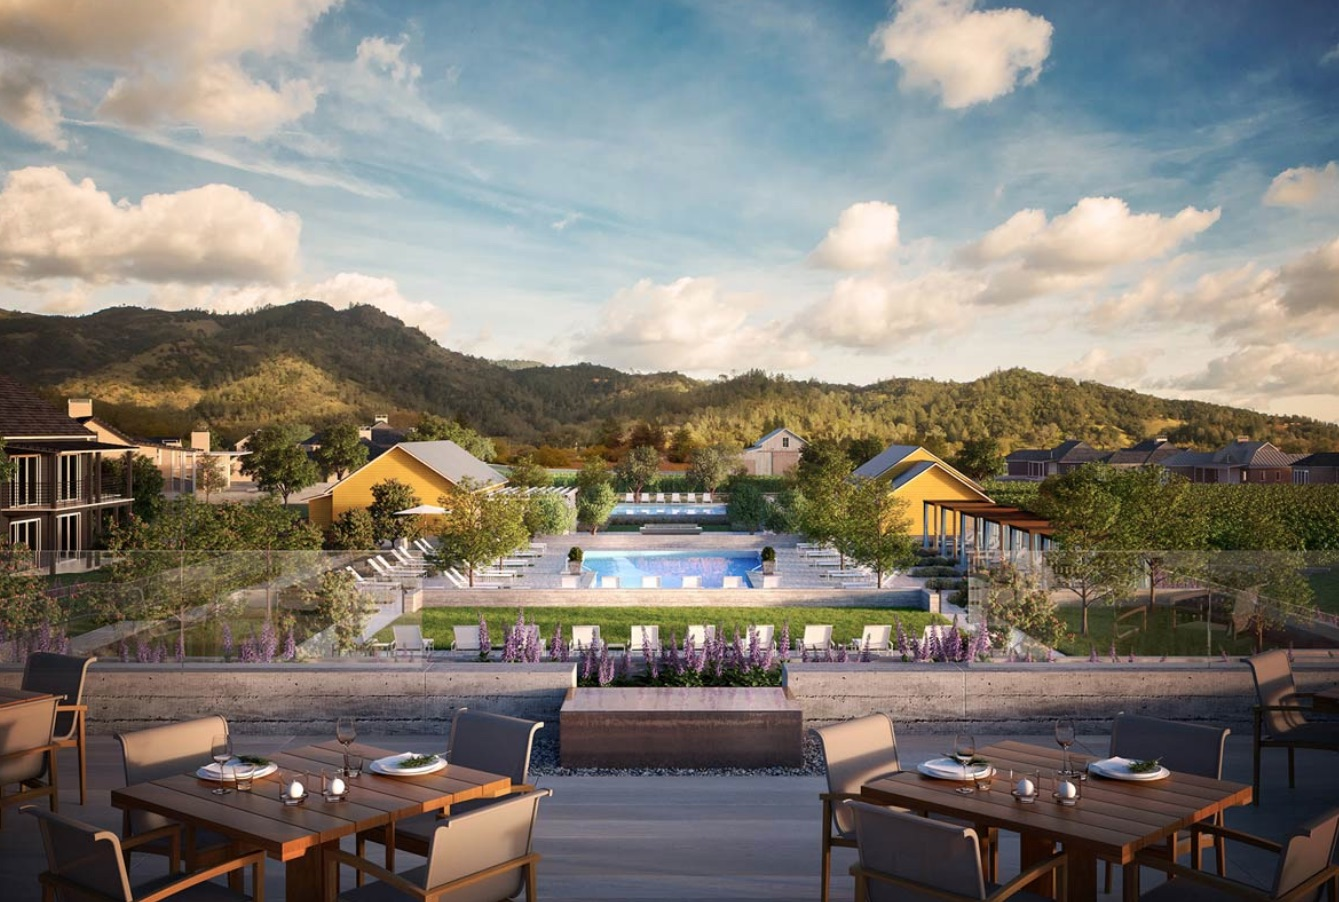 A view of the resort